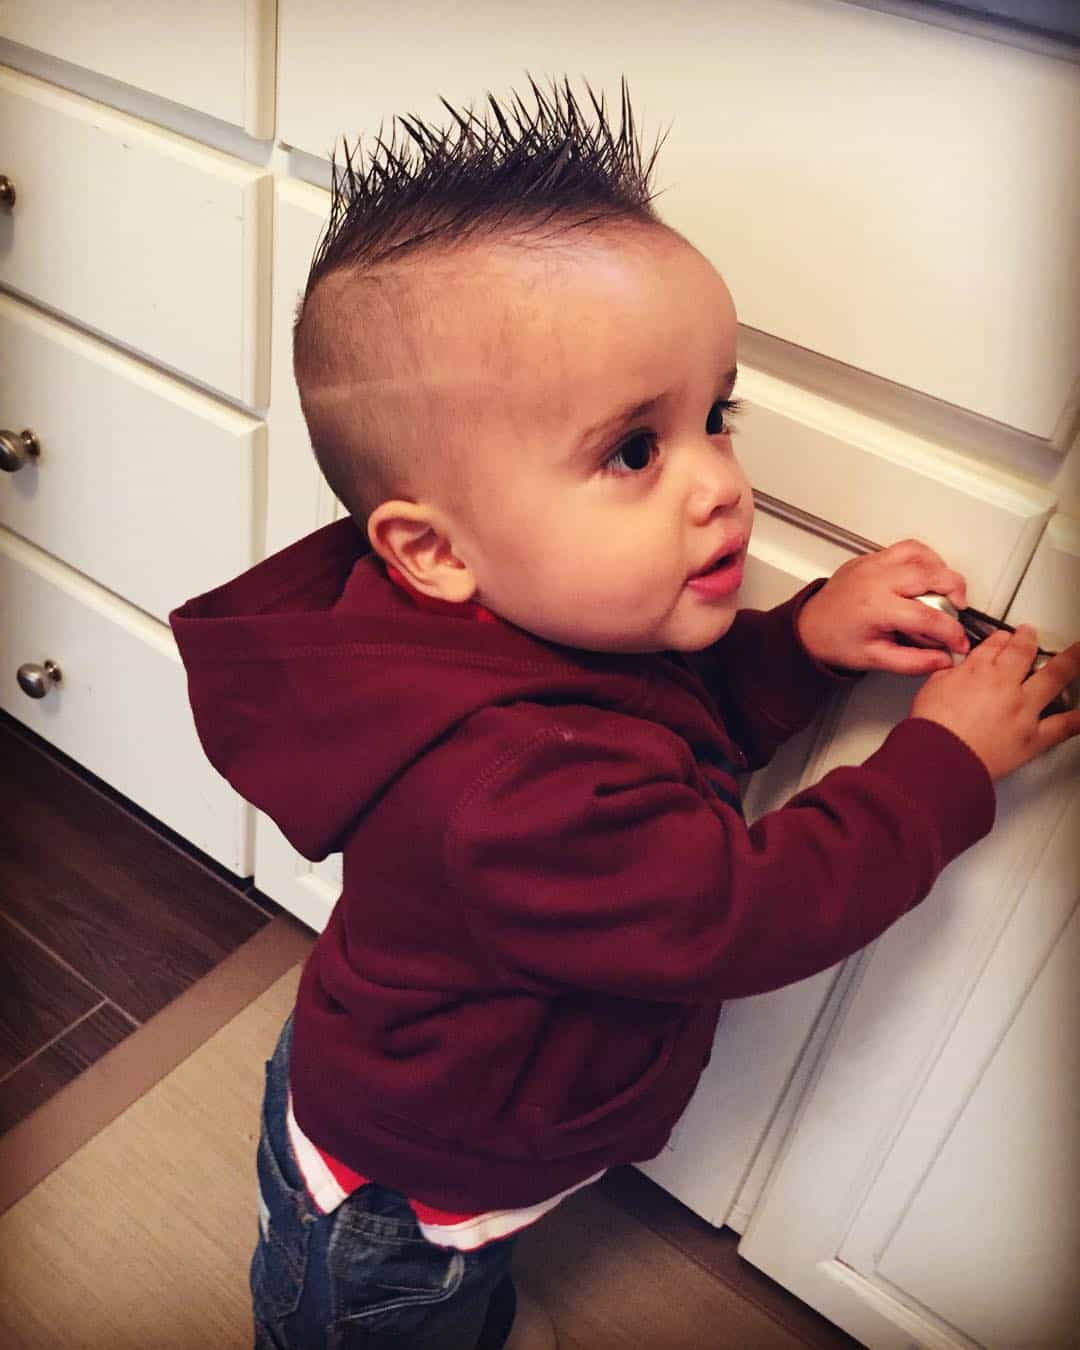 Hairstyles For A Boy 50 Cute Baby Boy Haircuts For Your Lovely Toddler 2019